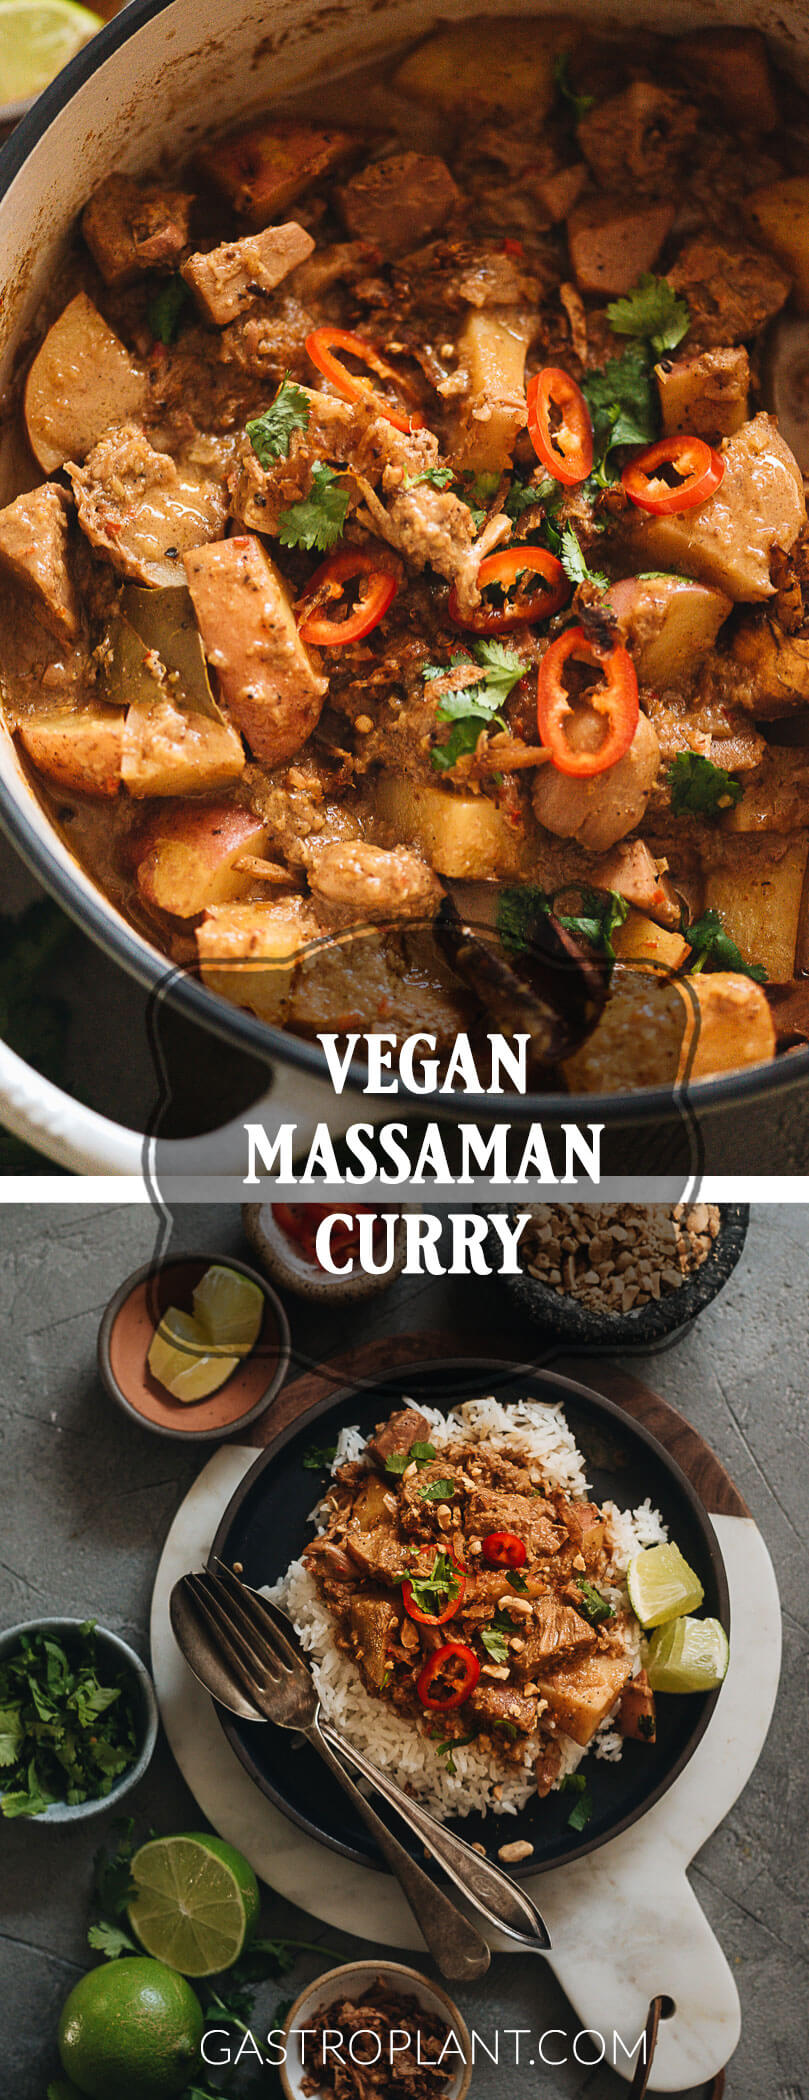 Vibrant Vegan Massaman Curry Collage